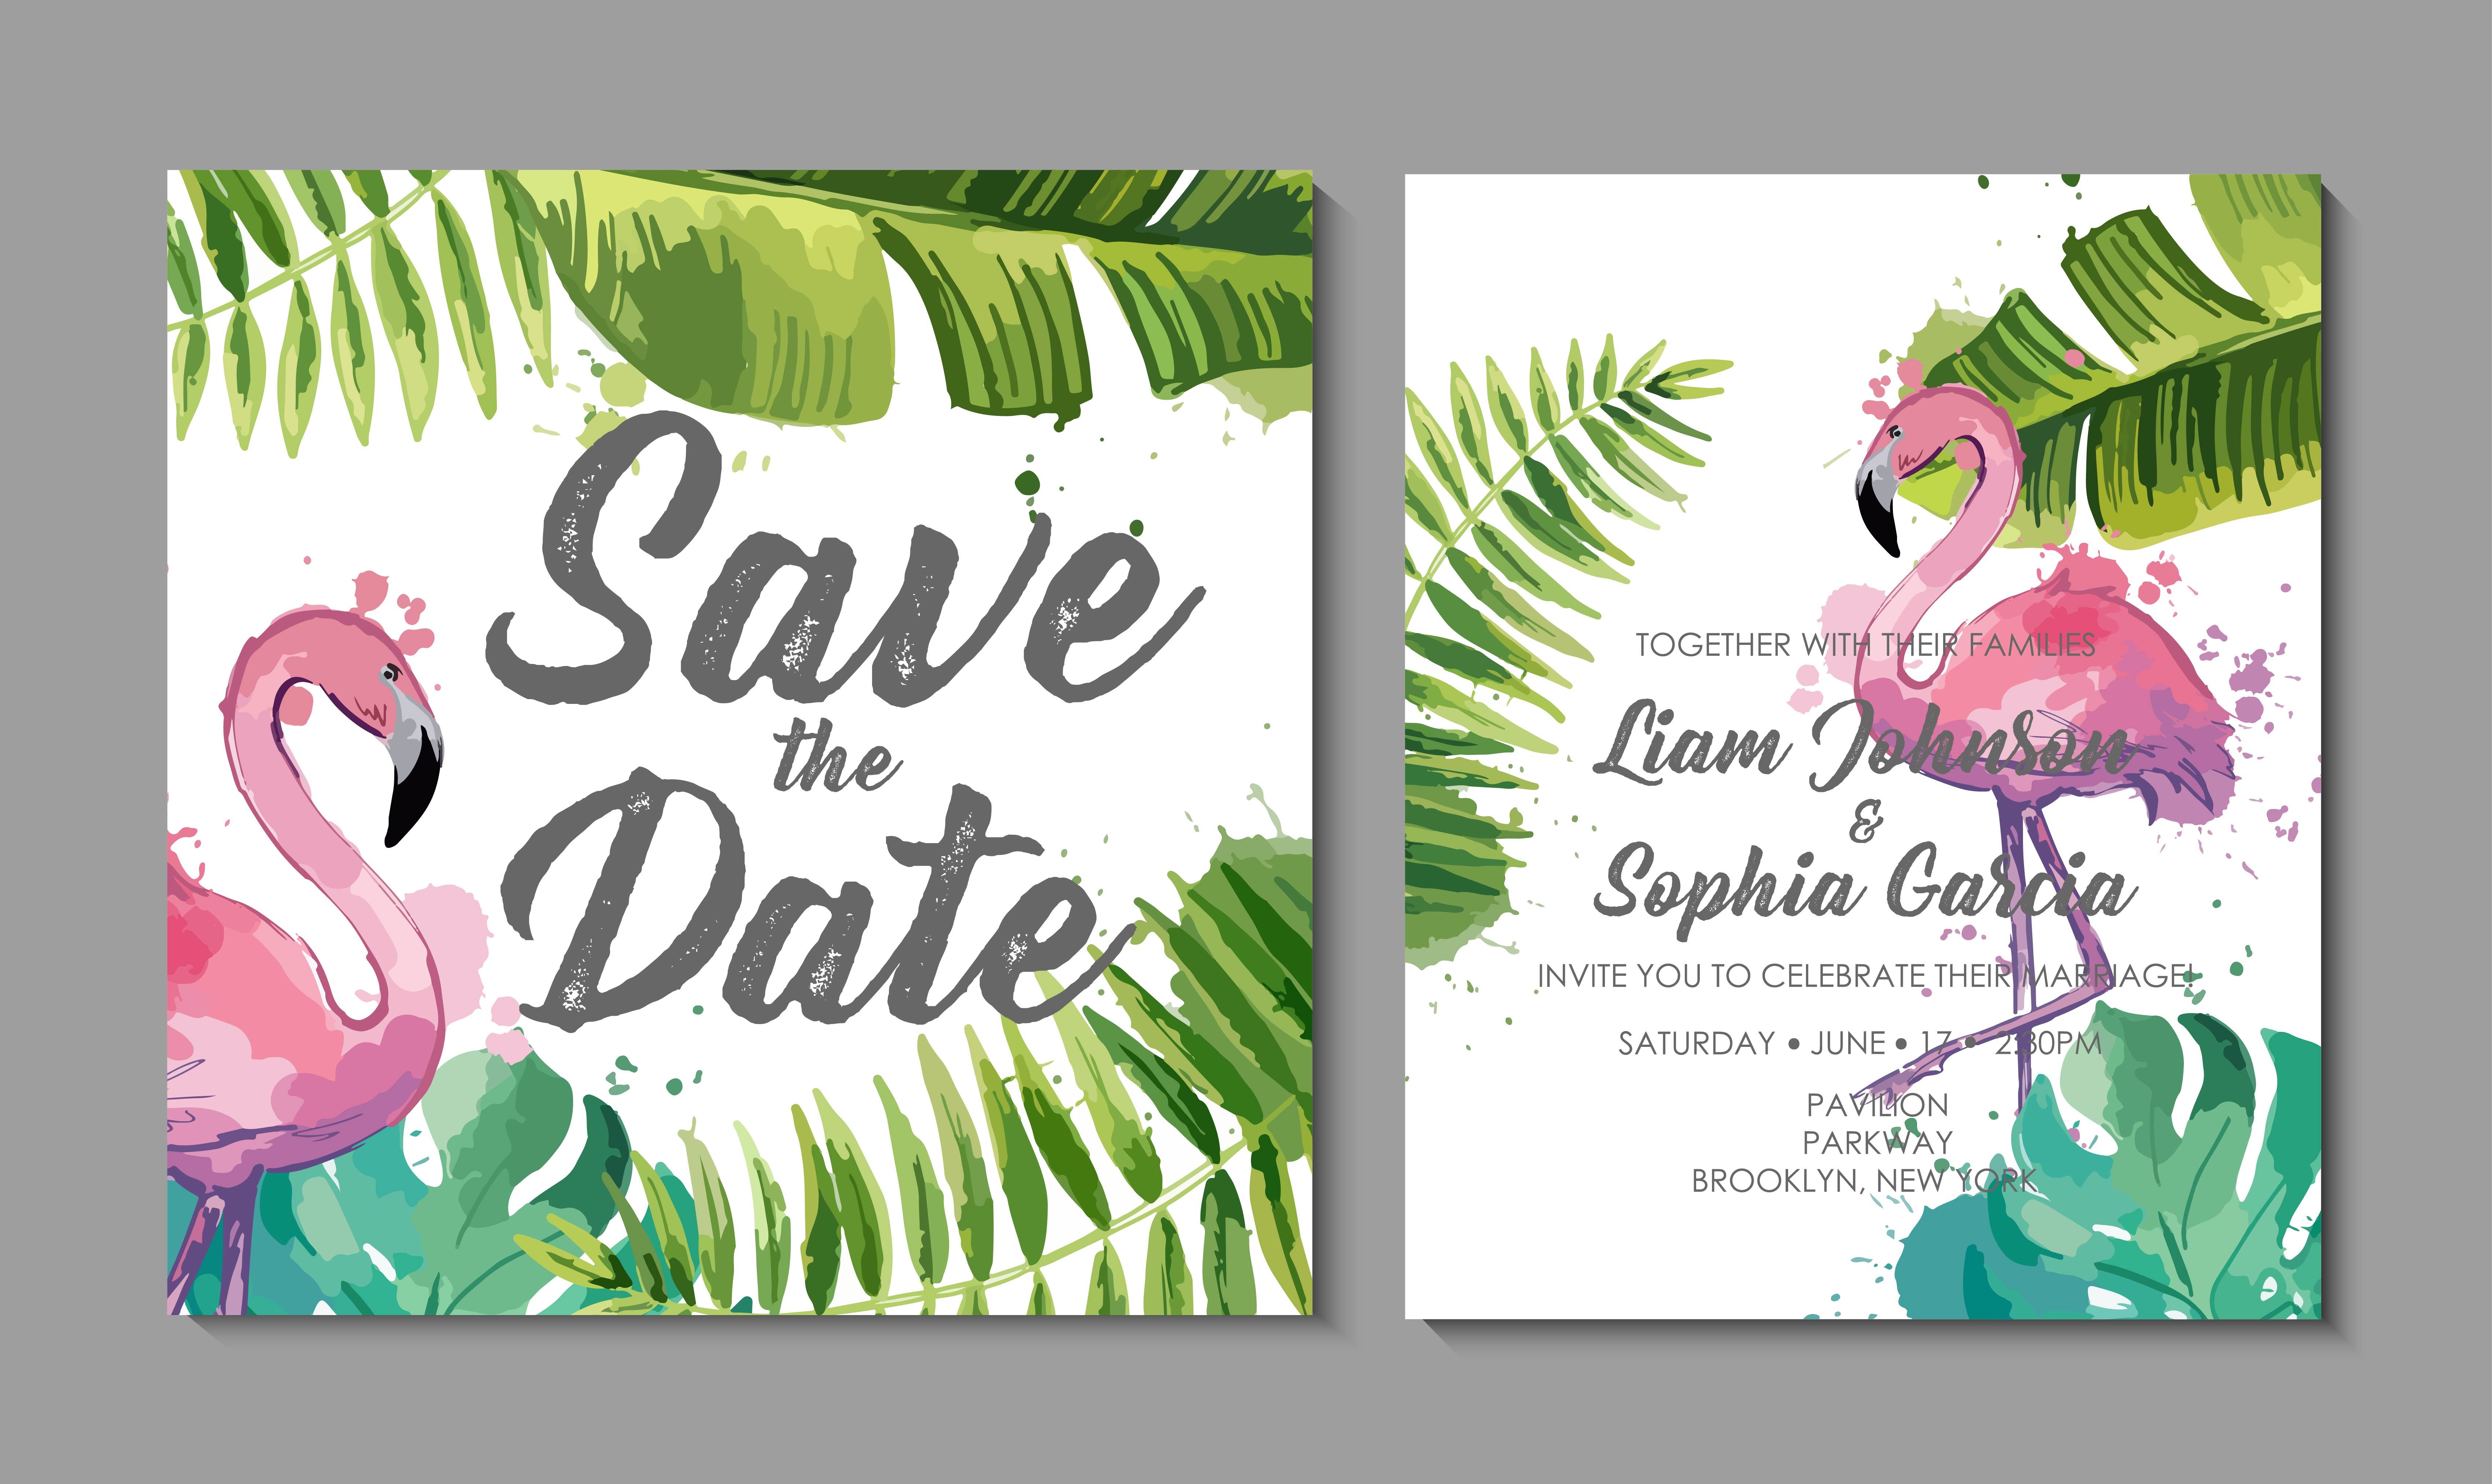 Wedding Invitation Suite With Exotic Tropical Leaves Download Free Vectors Clipart Graphics Vector Art About tropical palm tree leaves invitation: vecteezy